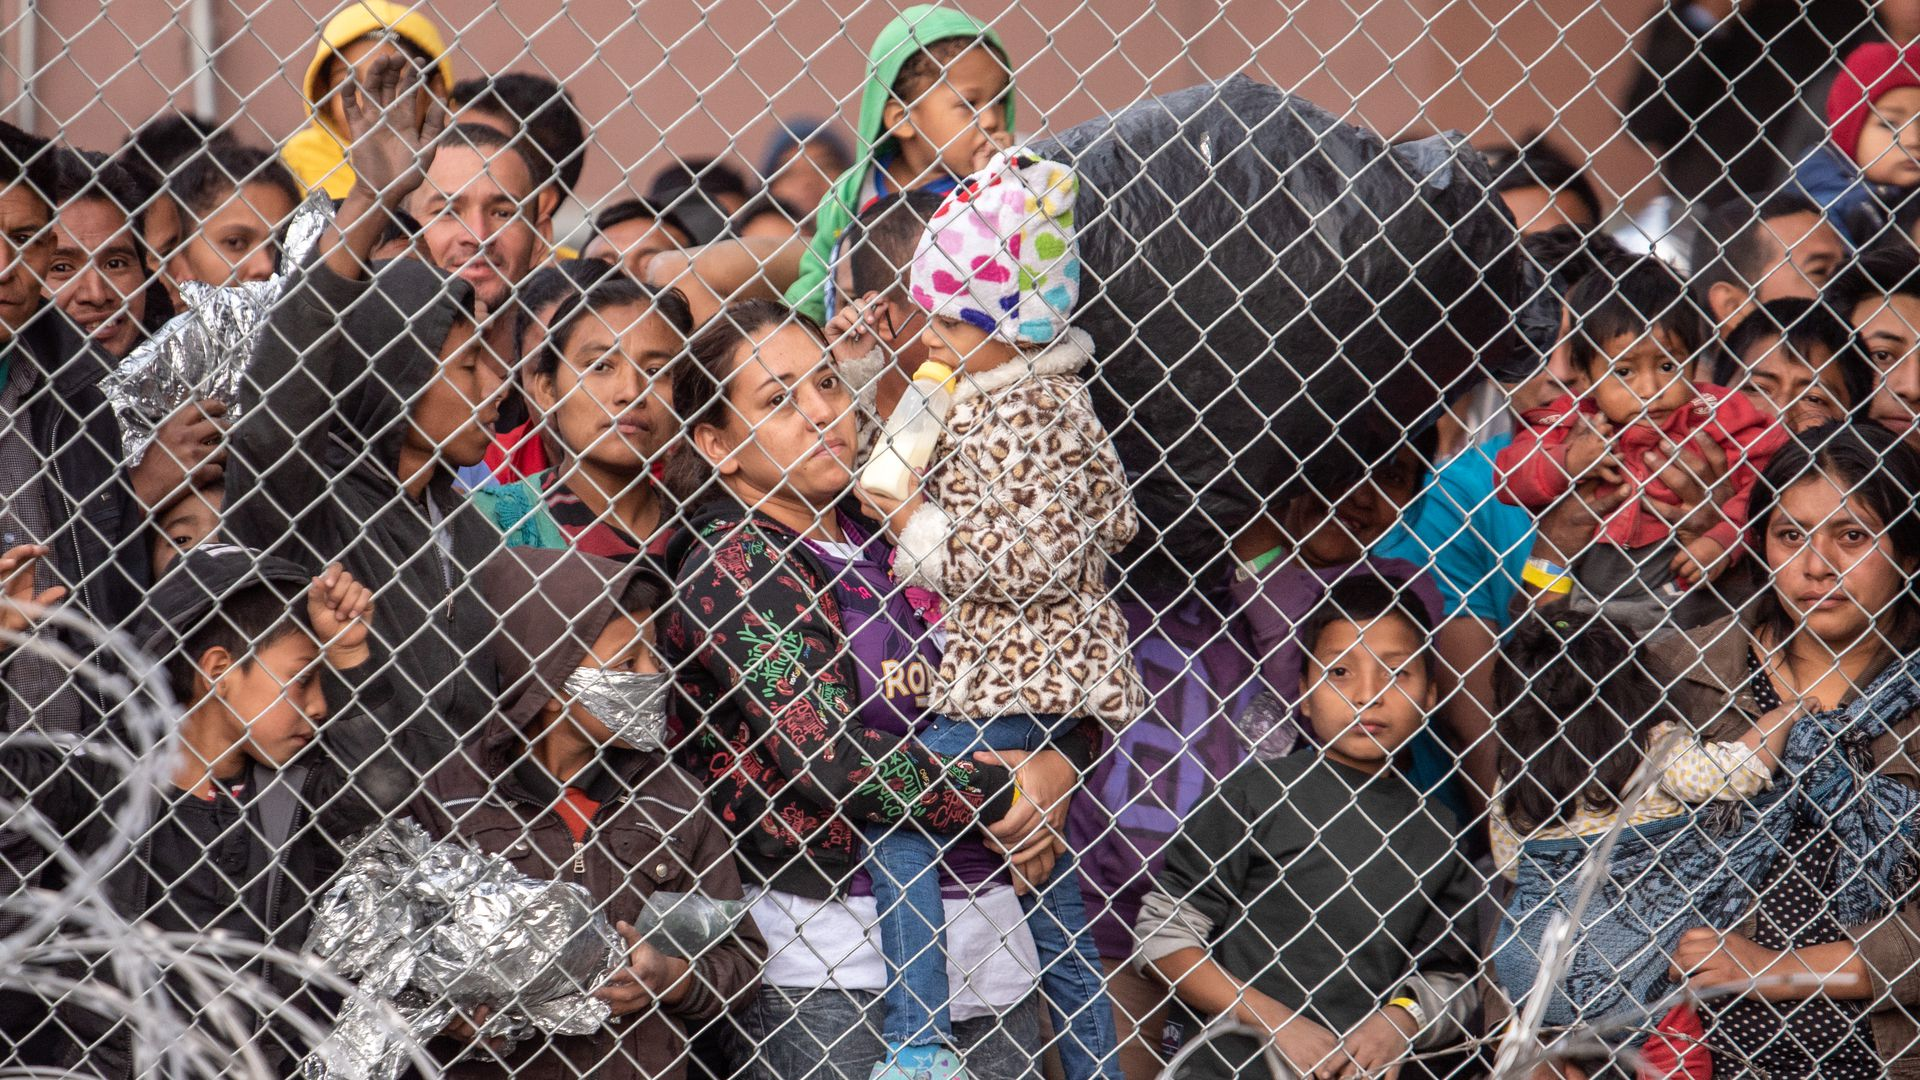 Migrants are gathered inside the fence of a makeshift detention center in El Paso, Texas.